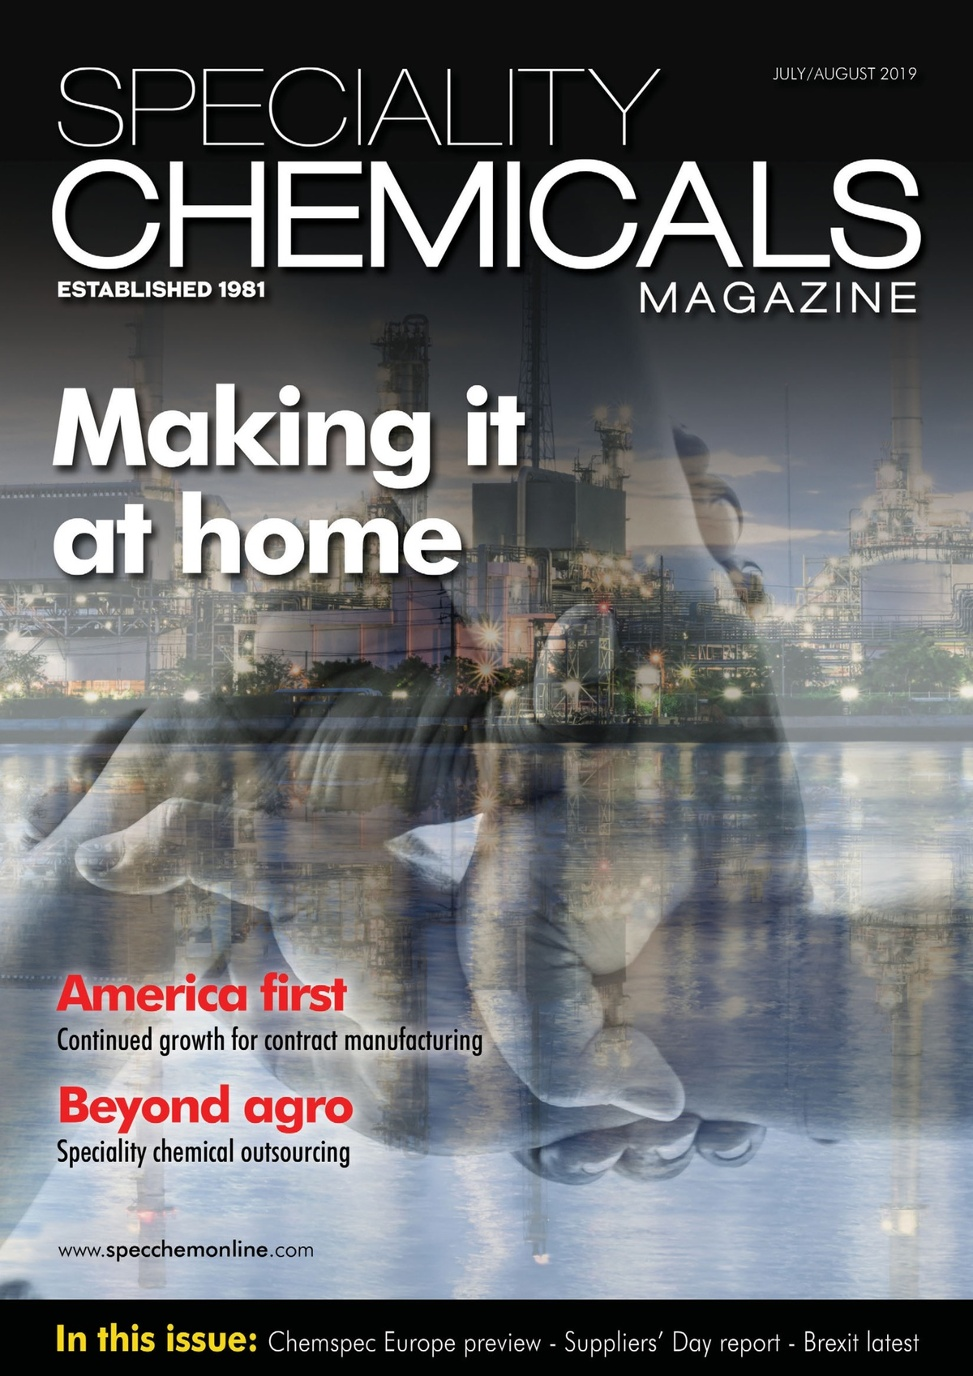 Speciality Chemicals Magazine Jul-Aug 2019